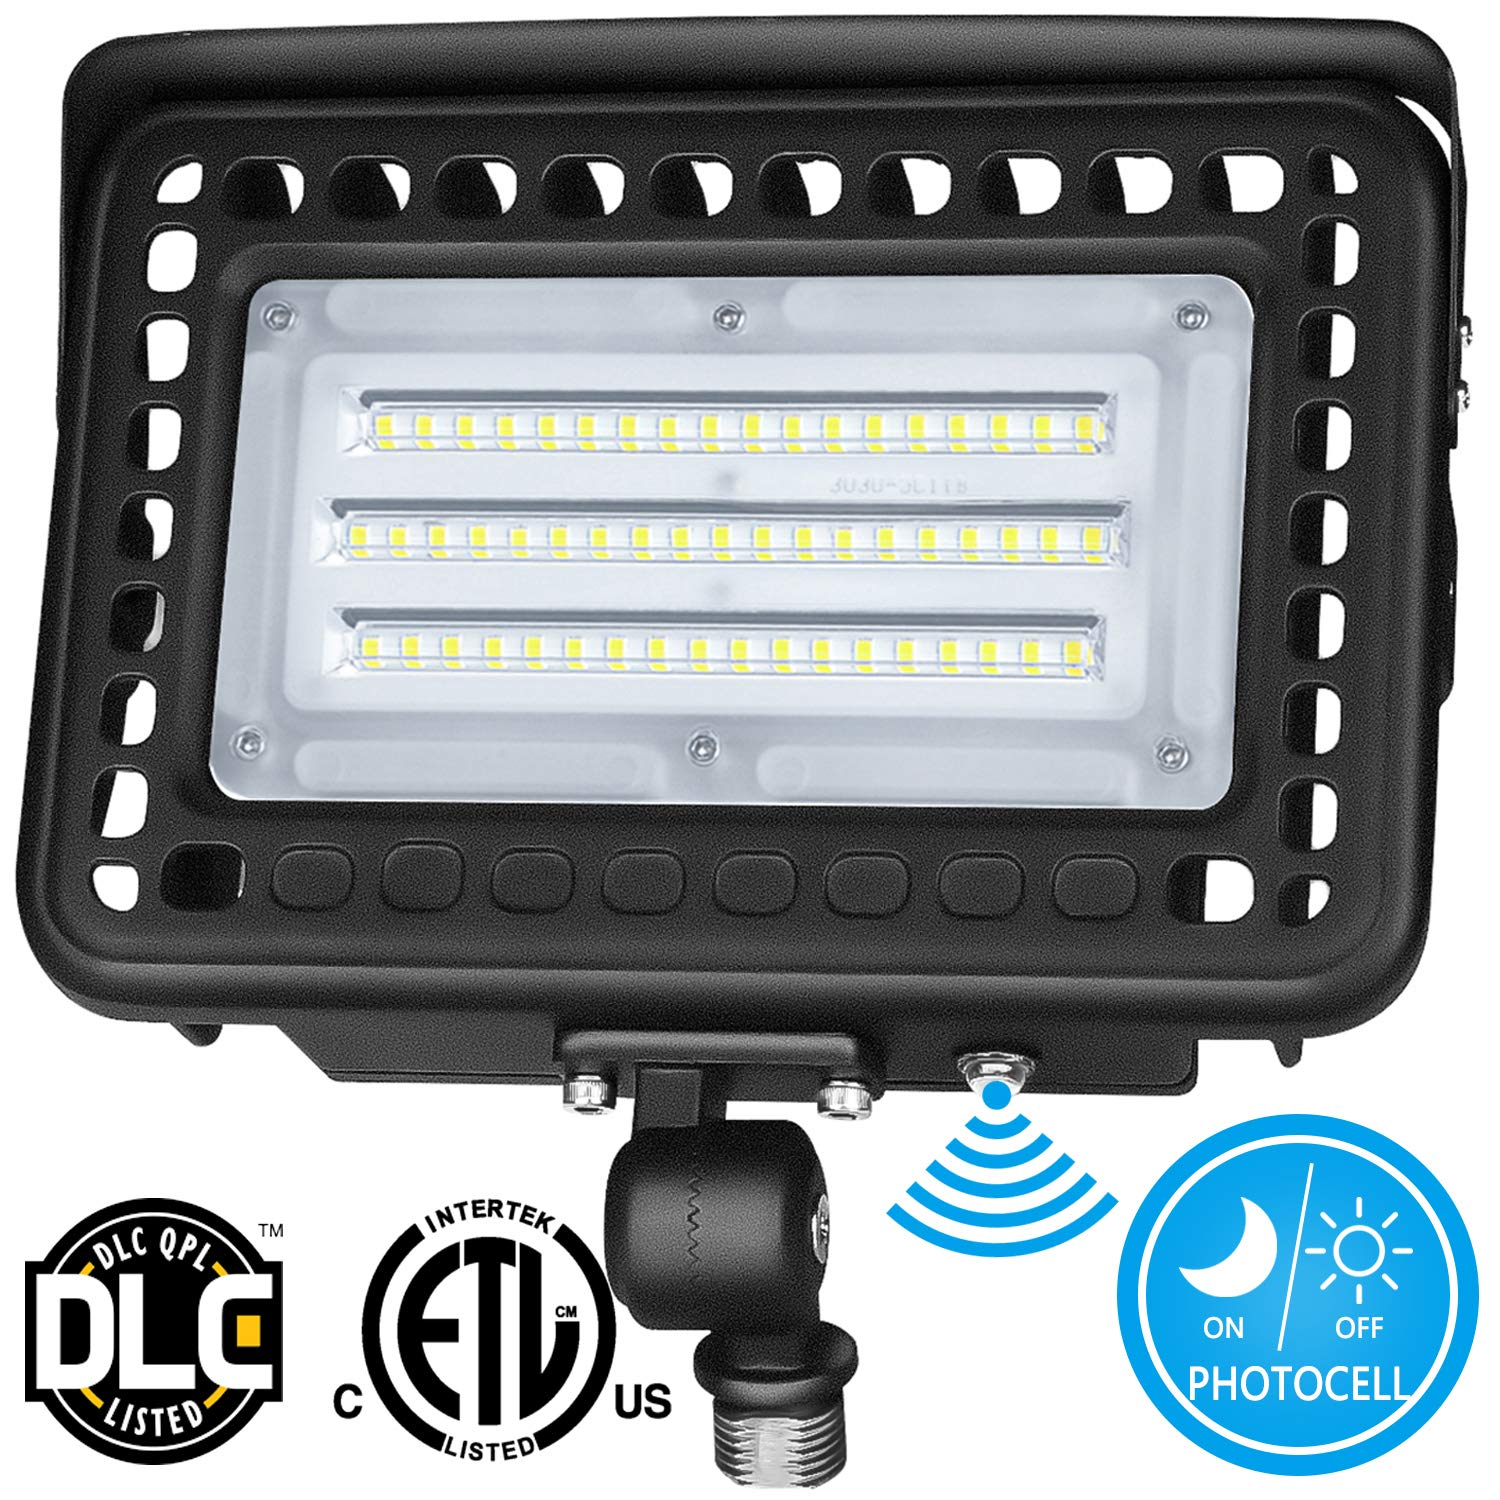 LEDMO 60W Knuckle Mount LED Flood Light 7800Lm LED Lights with Photocell Dusk to Dawn Outdoor LED Flood Lights 5000K 300W MH Equal for Doorways|Pathways|Yard|Landscape|Garden UL&DLC Listed